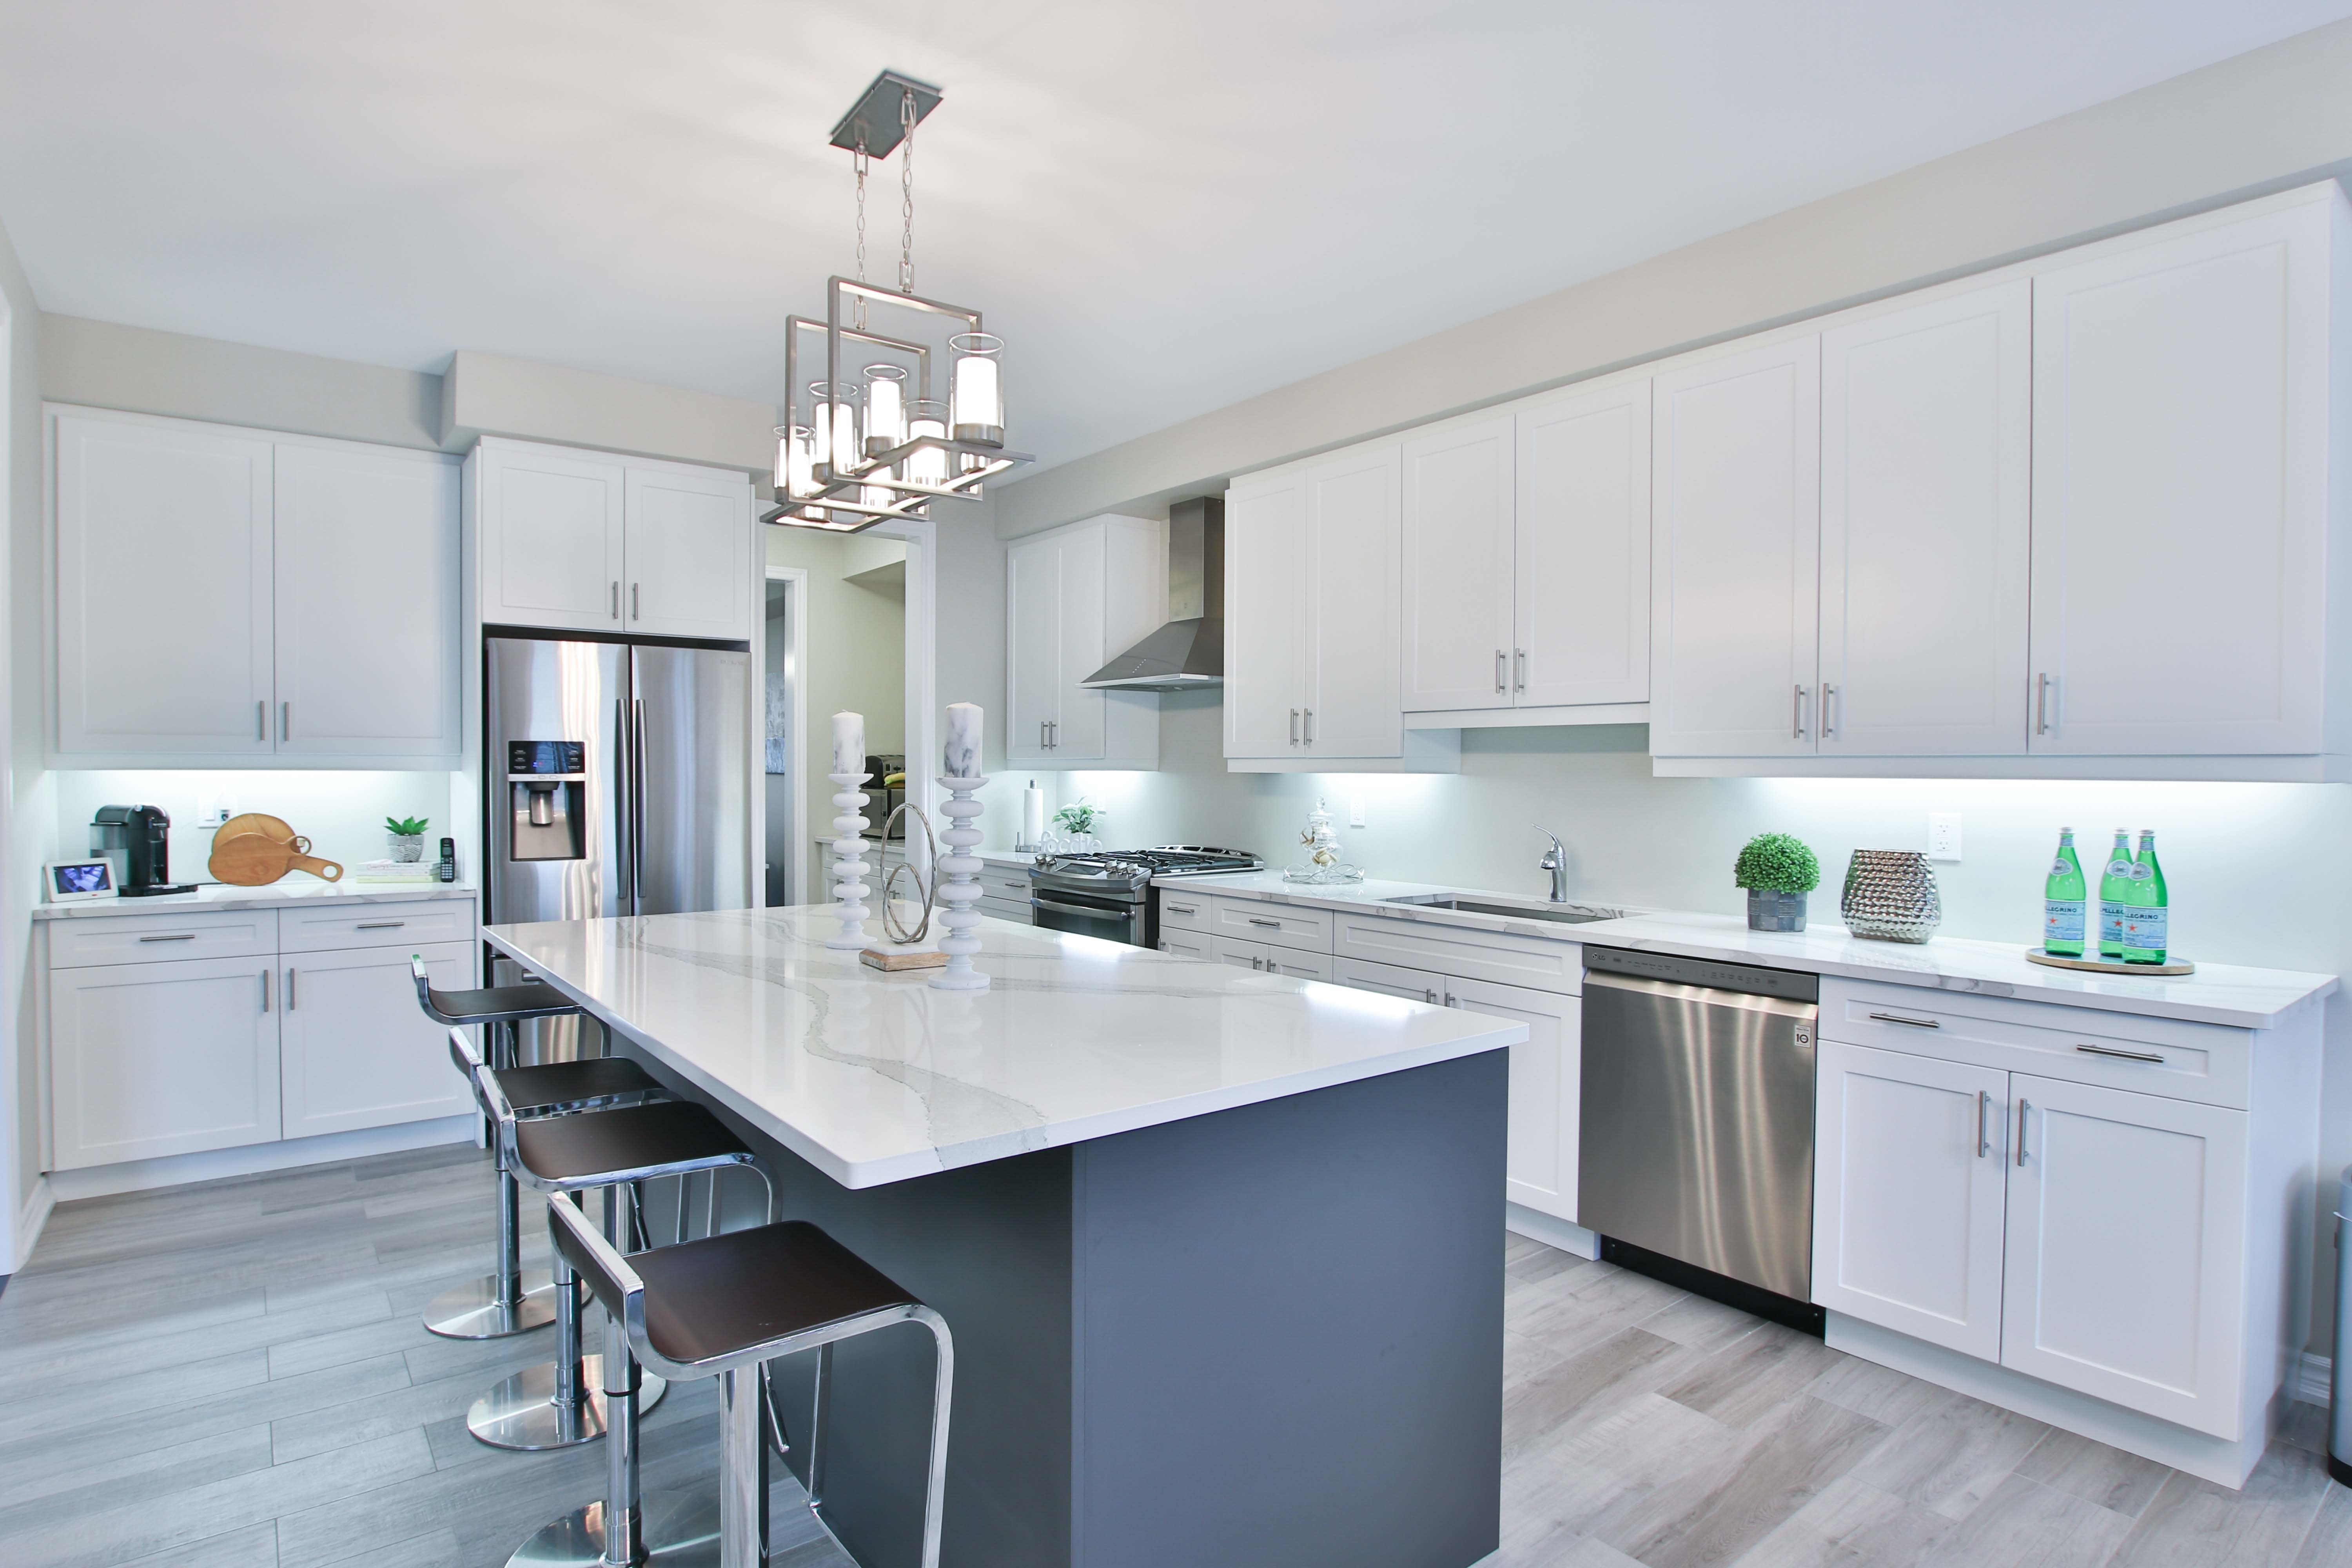 clean bathrooms and kitchen in montreal